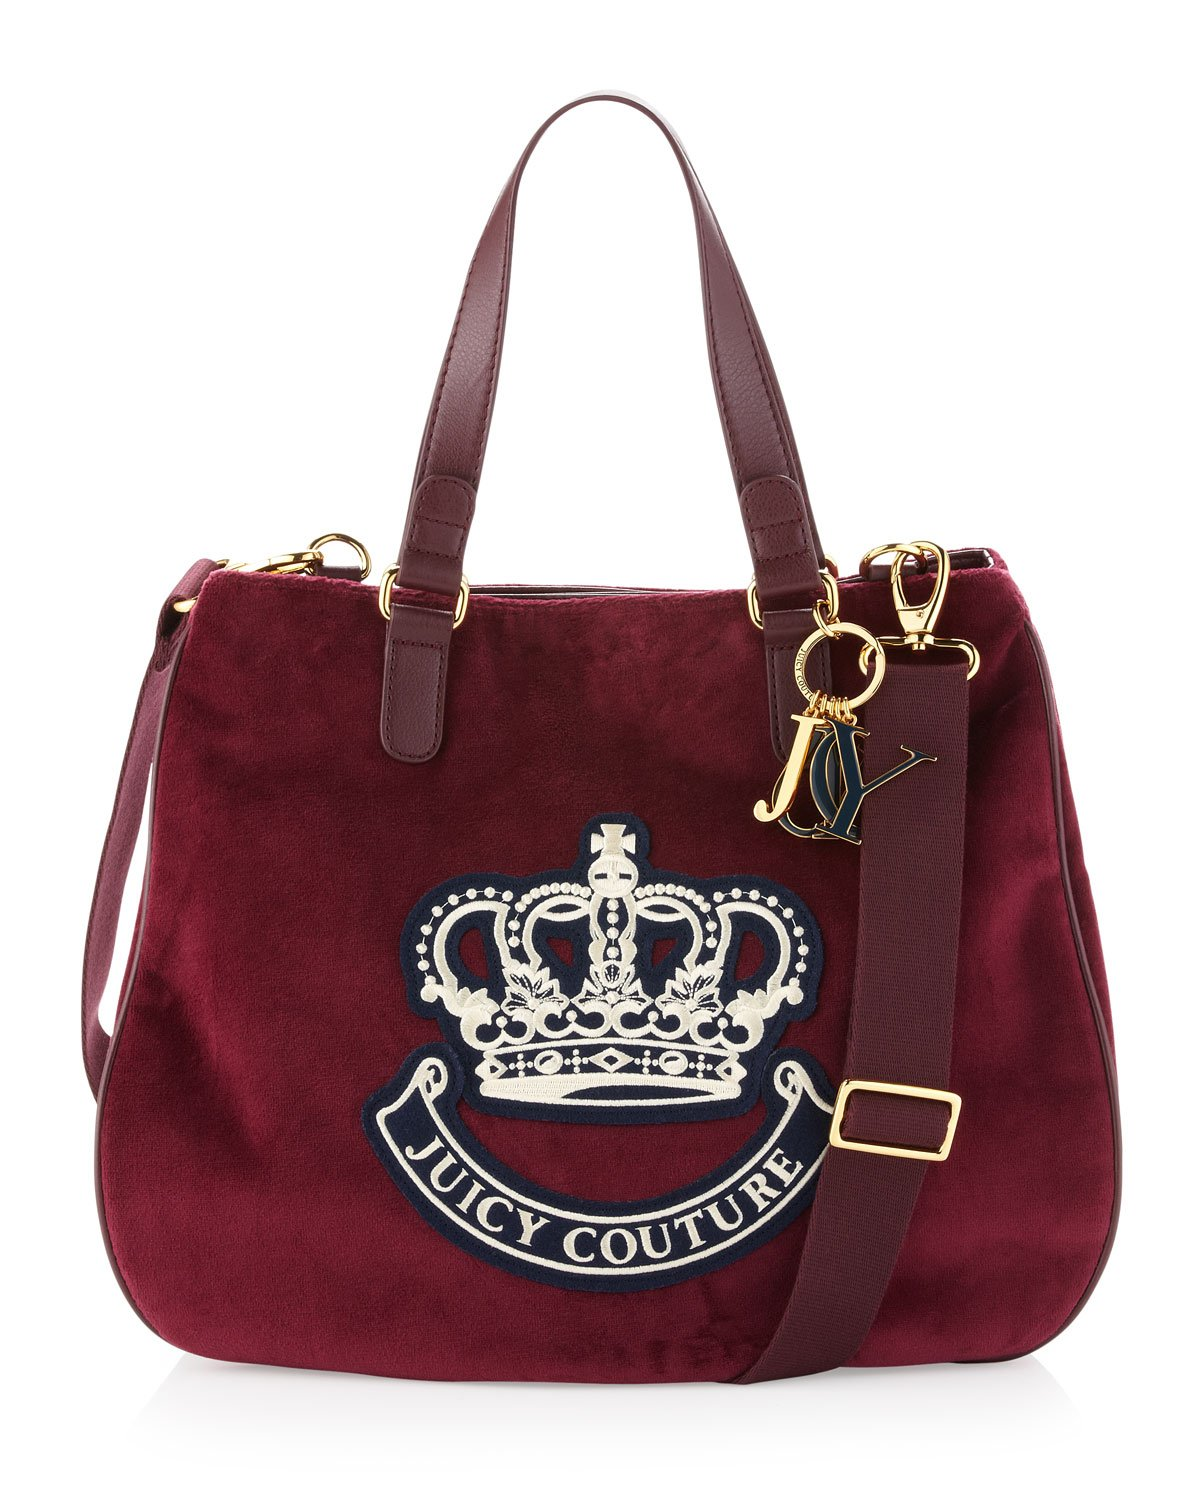 juicy couture victoria velour tote bag deep maroon in red deep maroo lyst. Black Bedroom Furniture Sets. Home Design Ideas